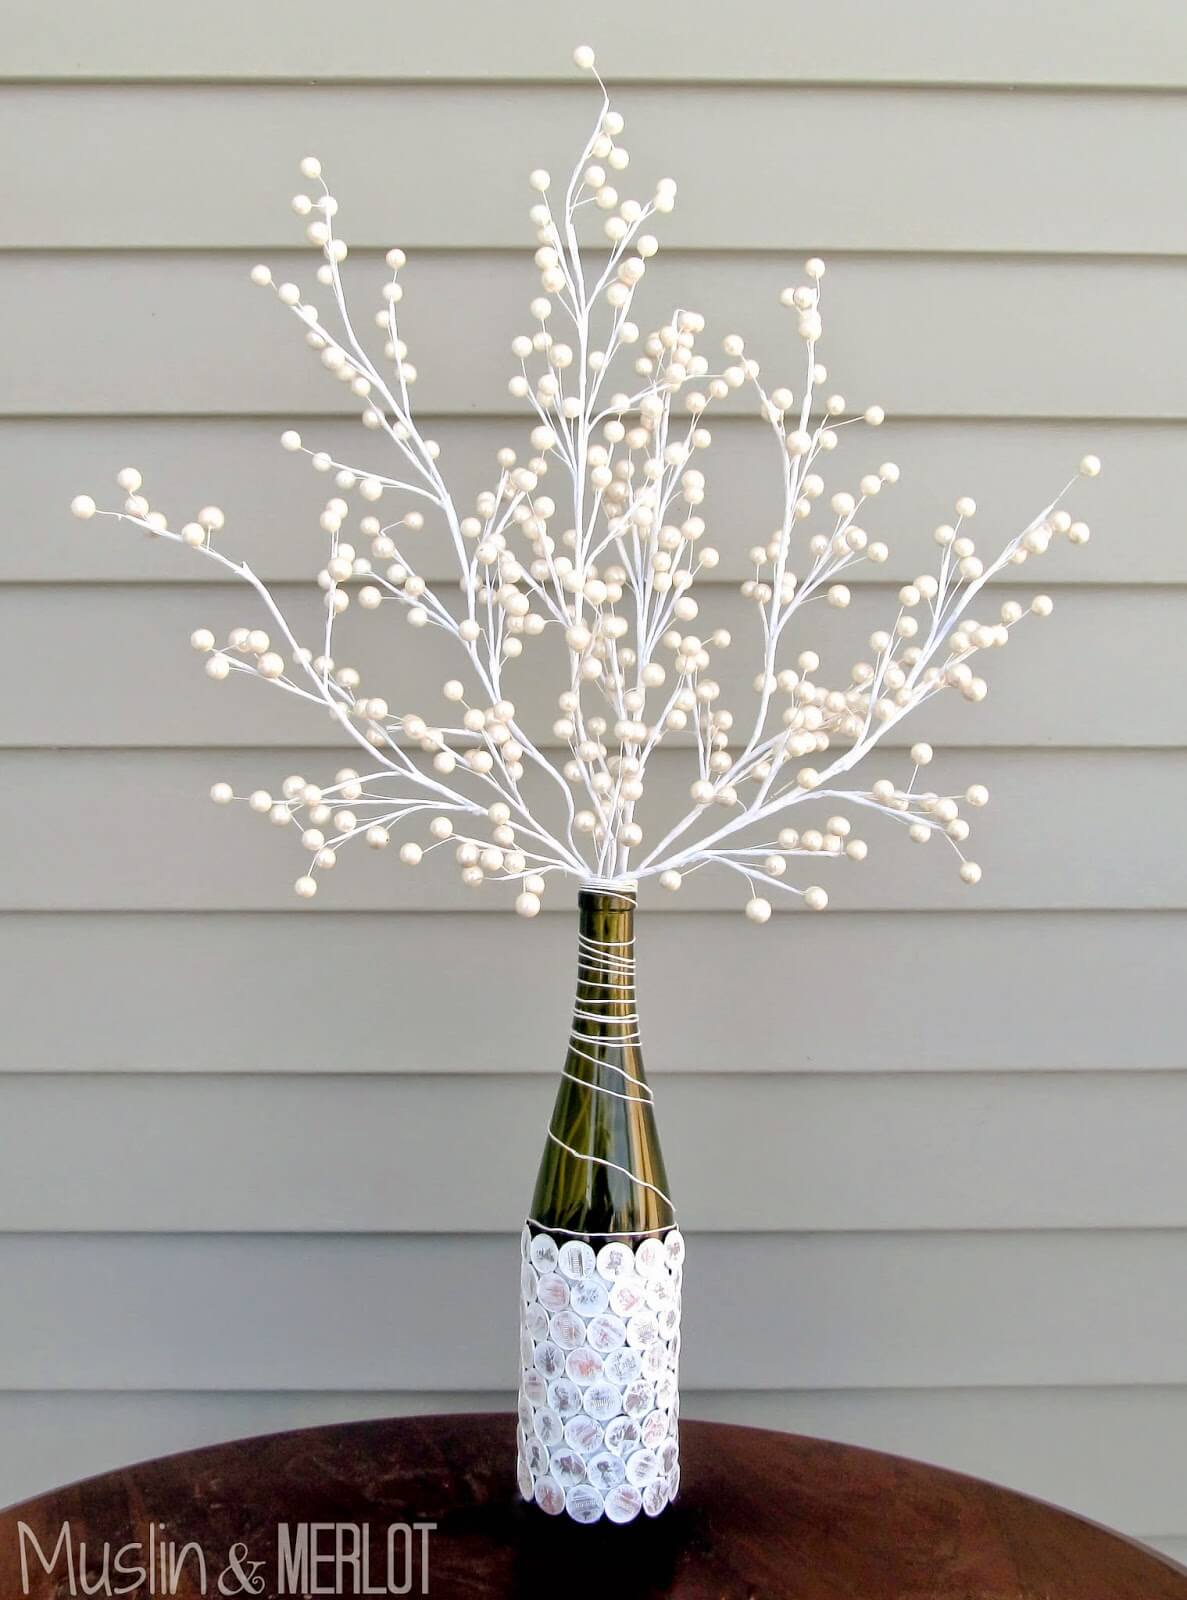 A Gorgeous Vase with a Tree Branch Bouquet